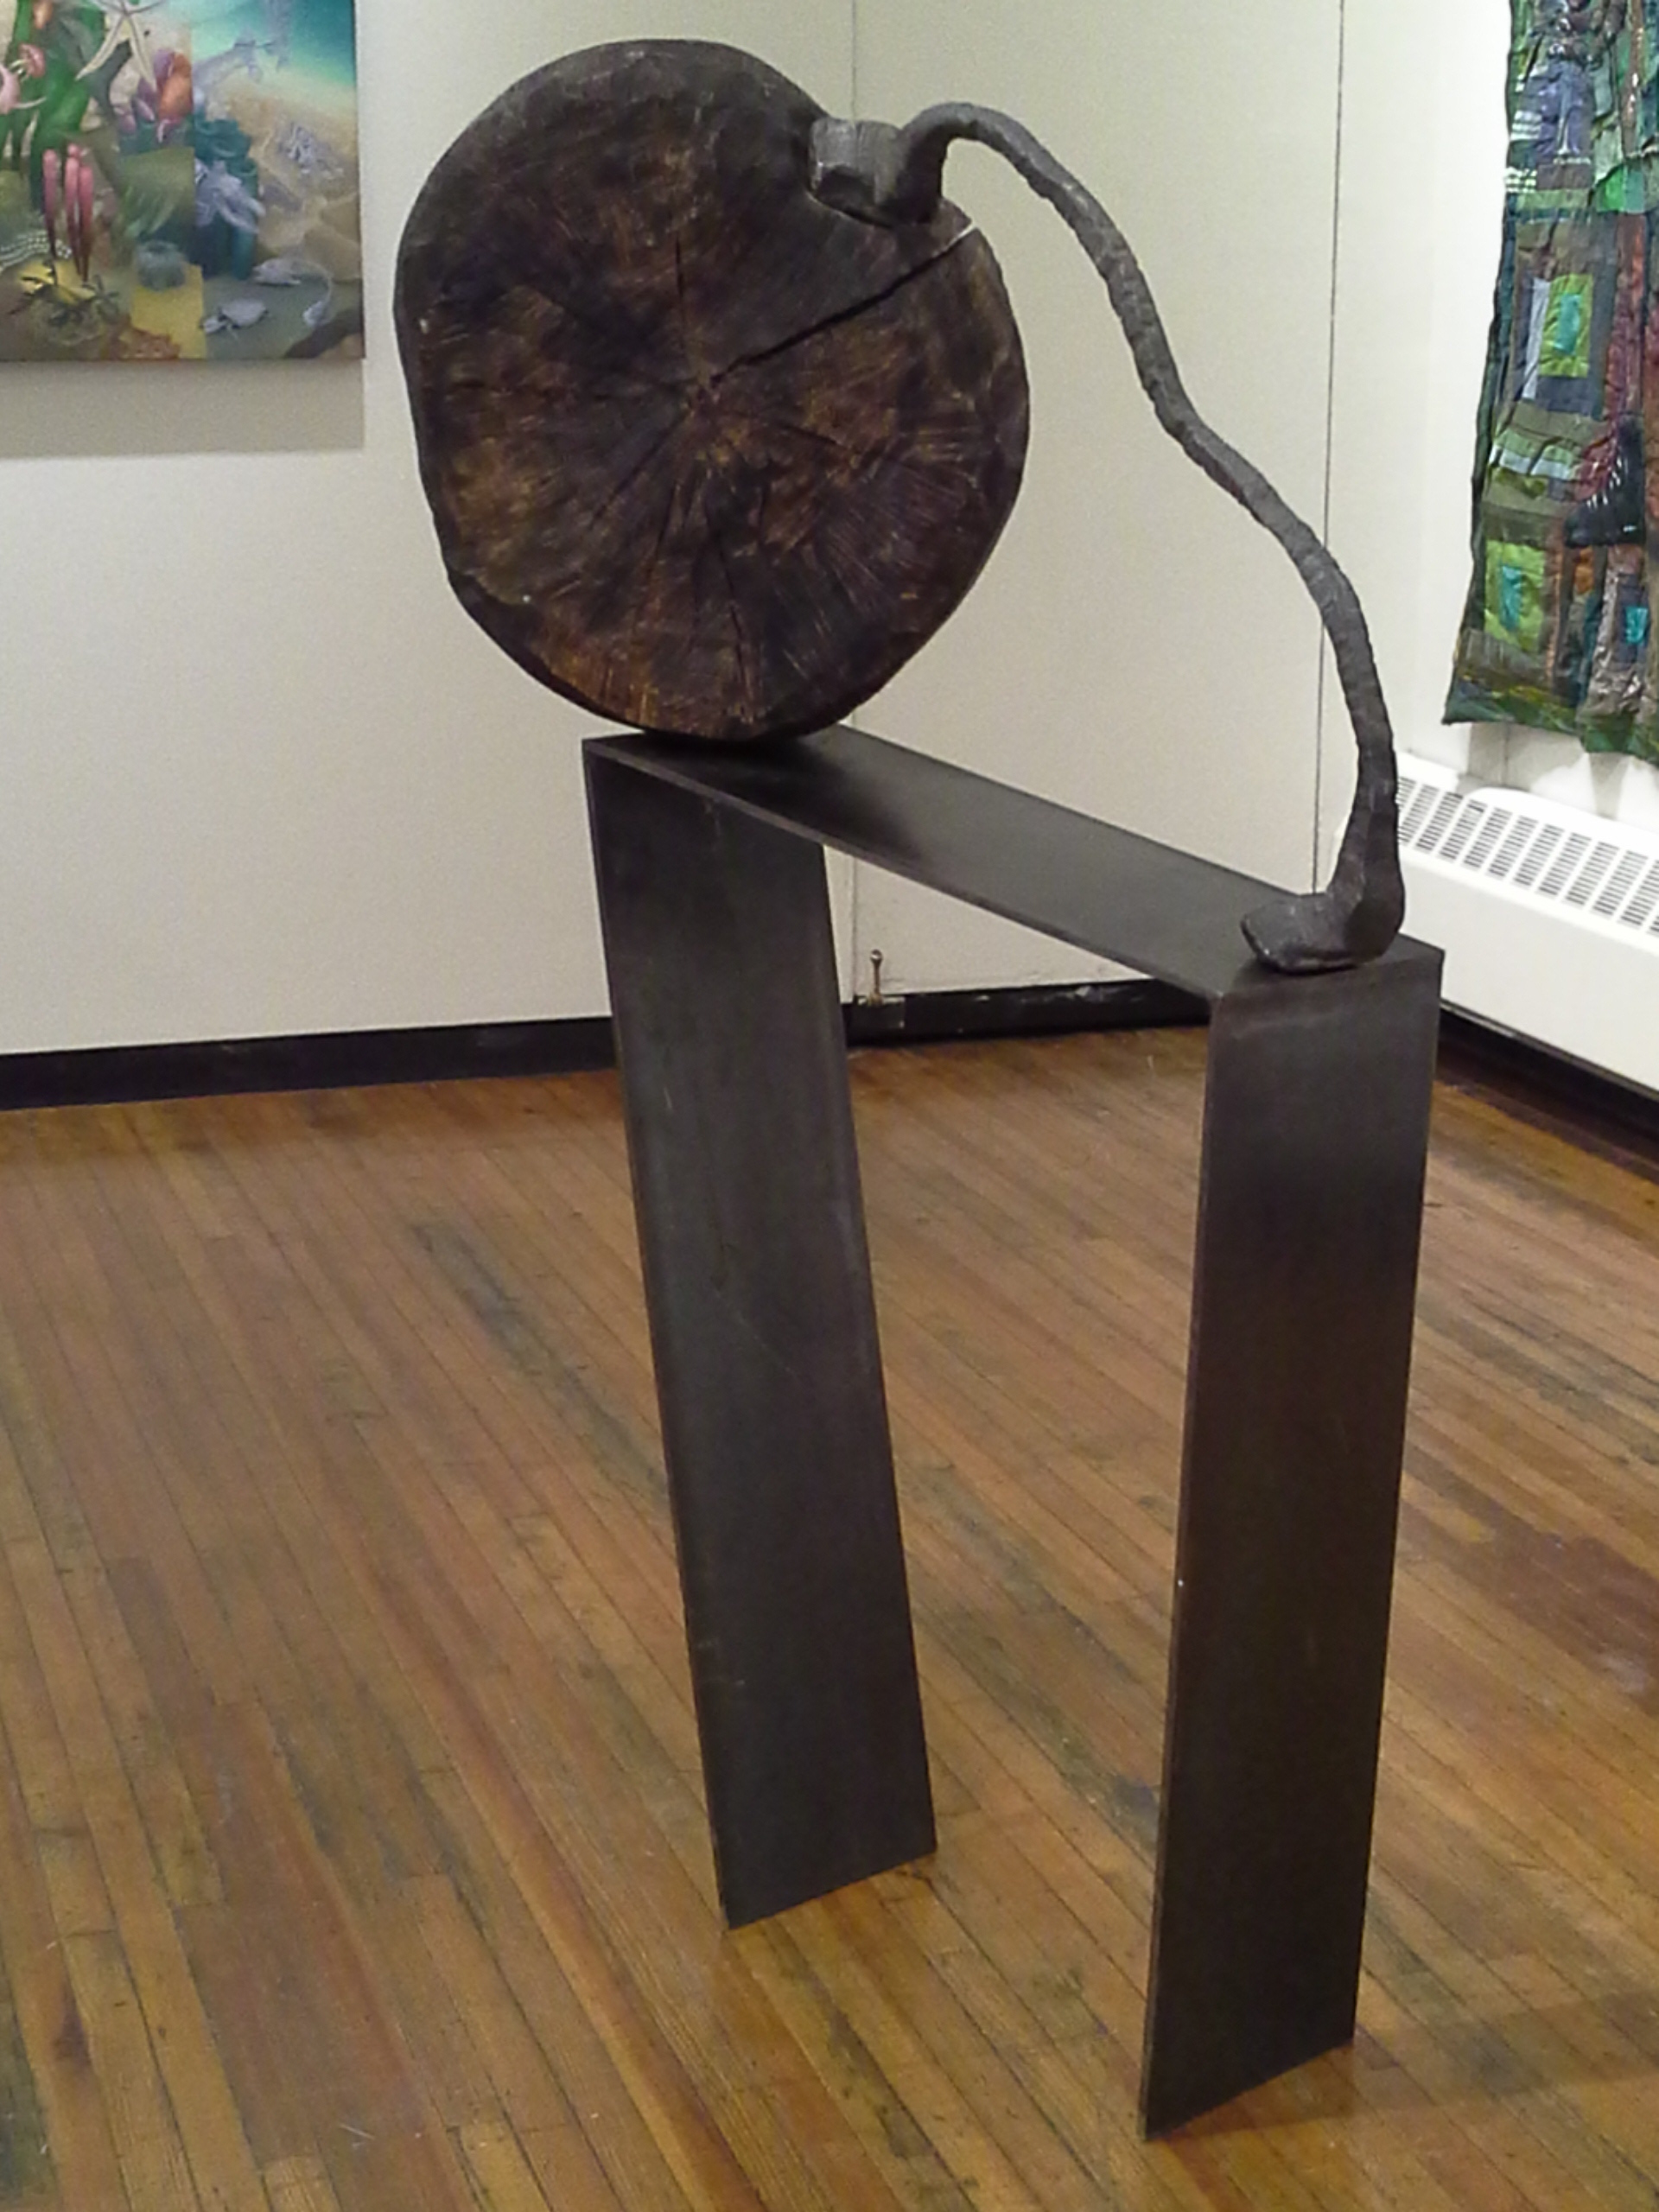 Sisyphus, Forged steel and wood.